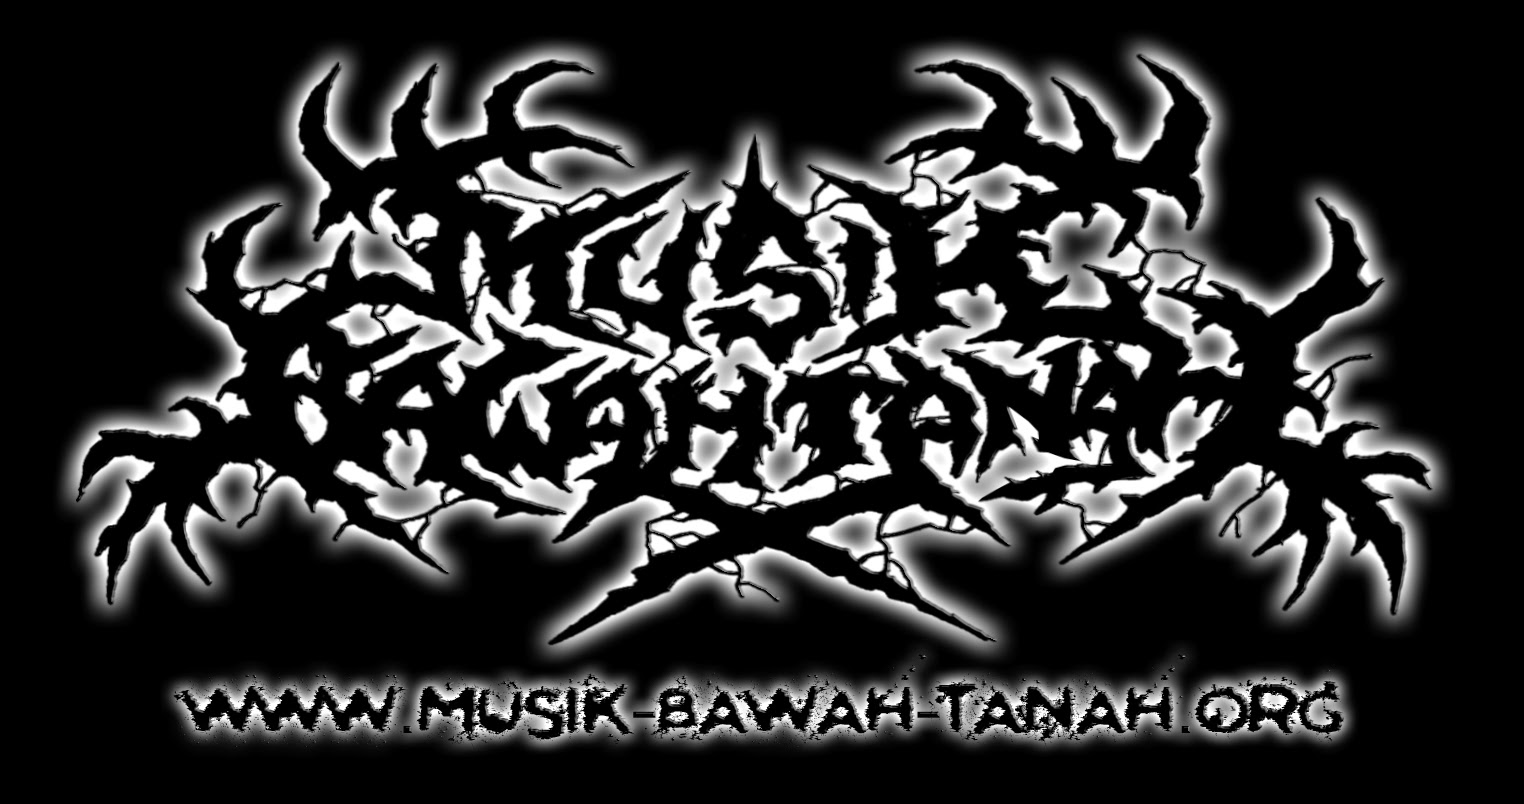 Musik Bawah Tanah | Black Metal | Grindcore | Screamo | Death Metal | Punk Rock | Hardcore | Metalcore | Gothic Metal | Deathcore | Artwork 4